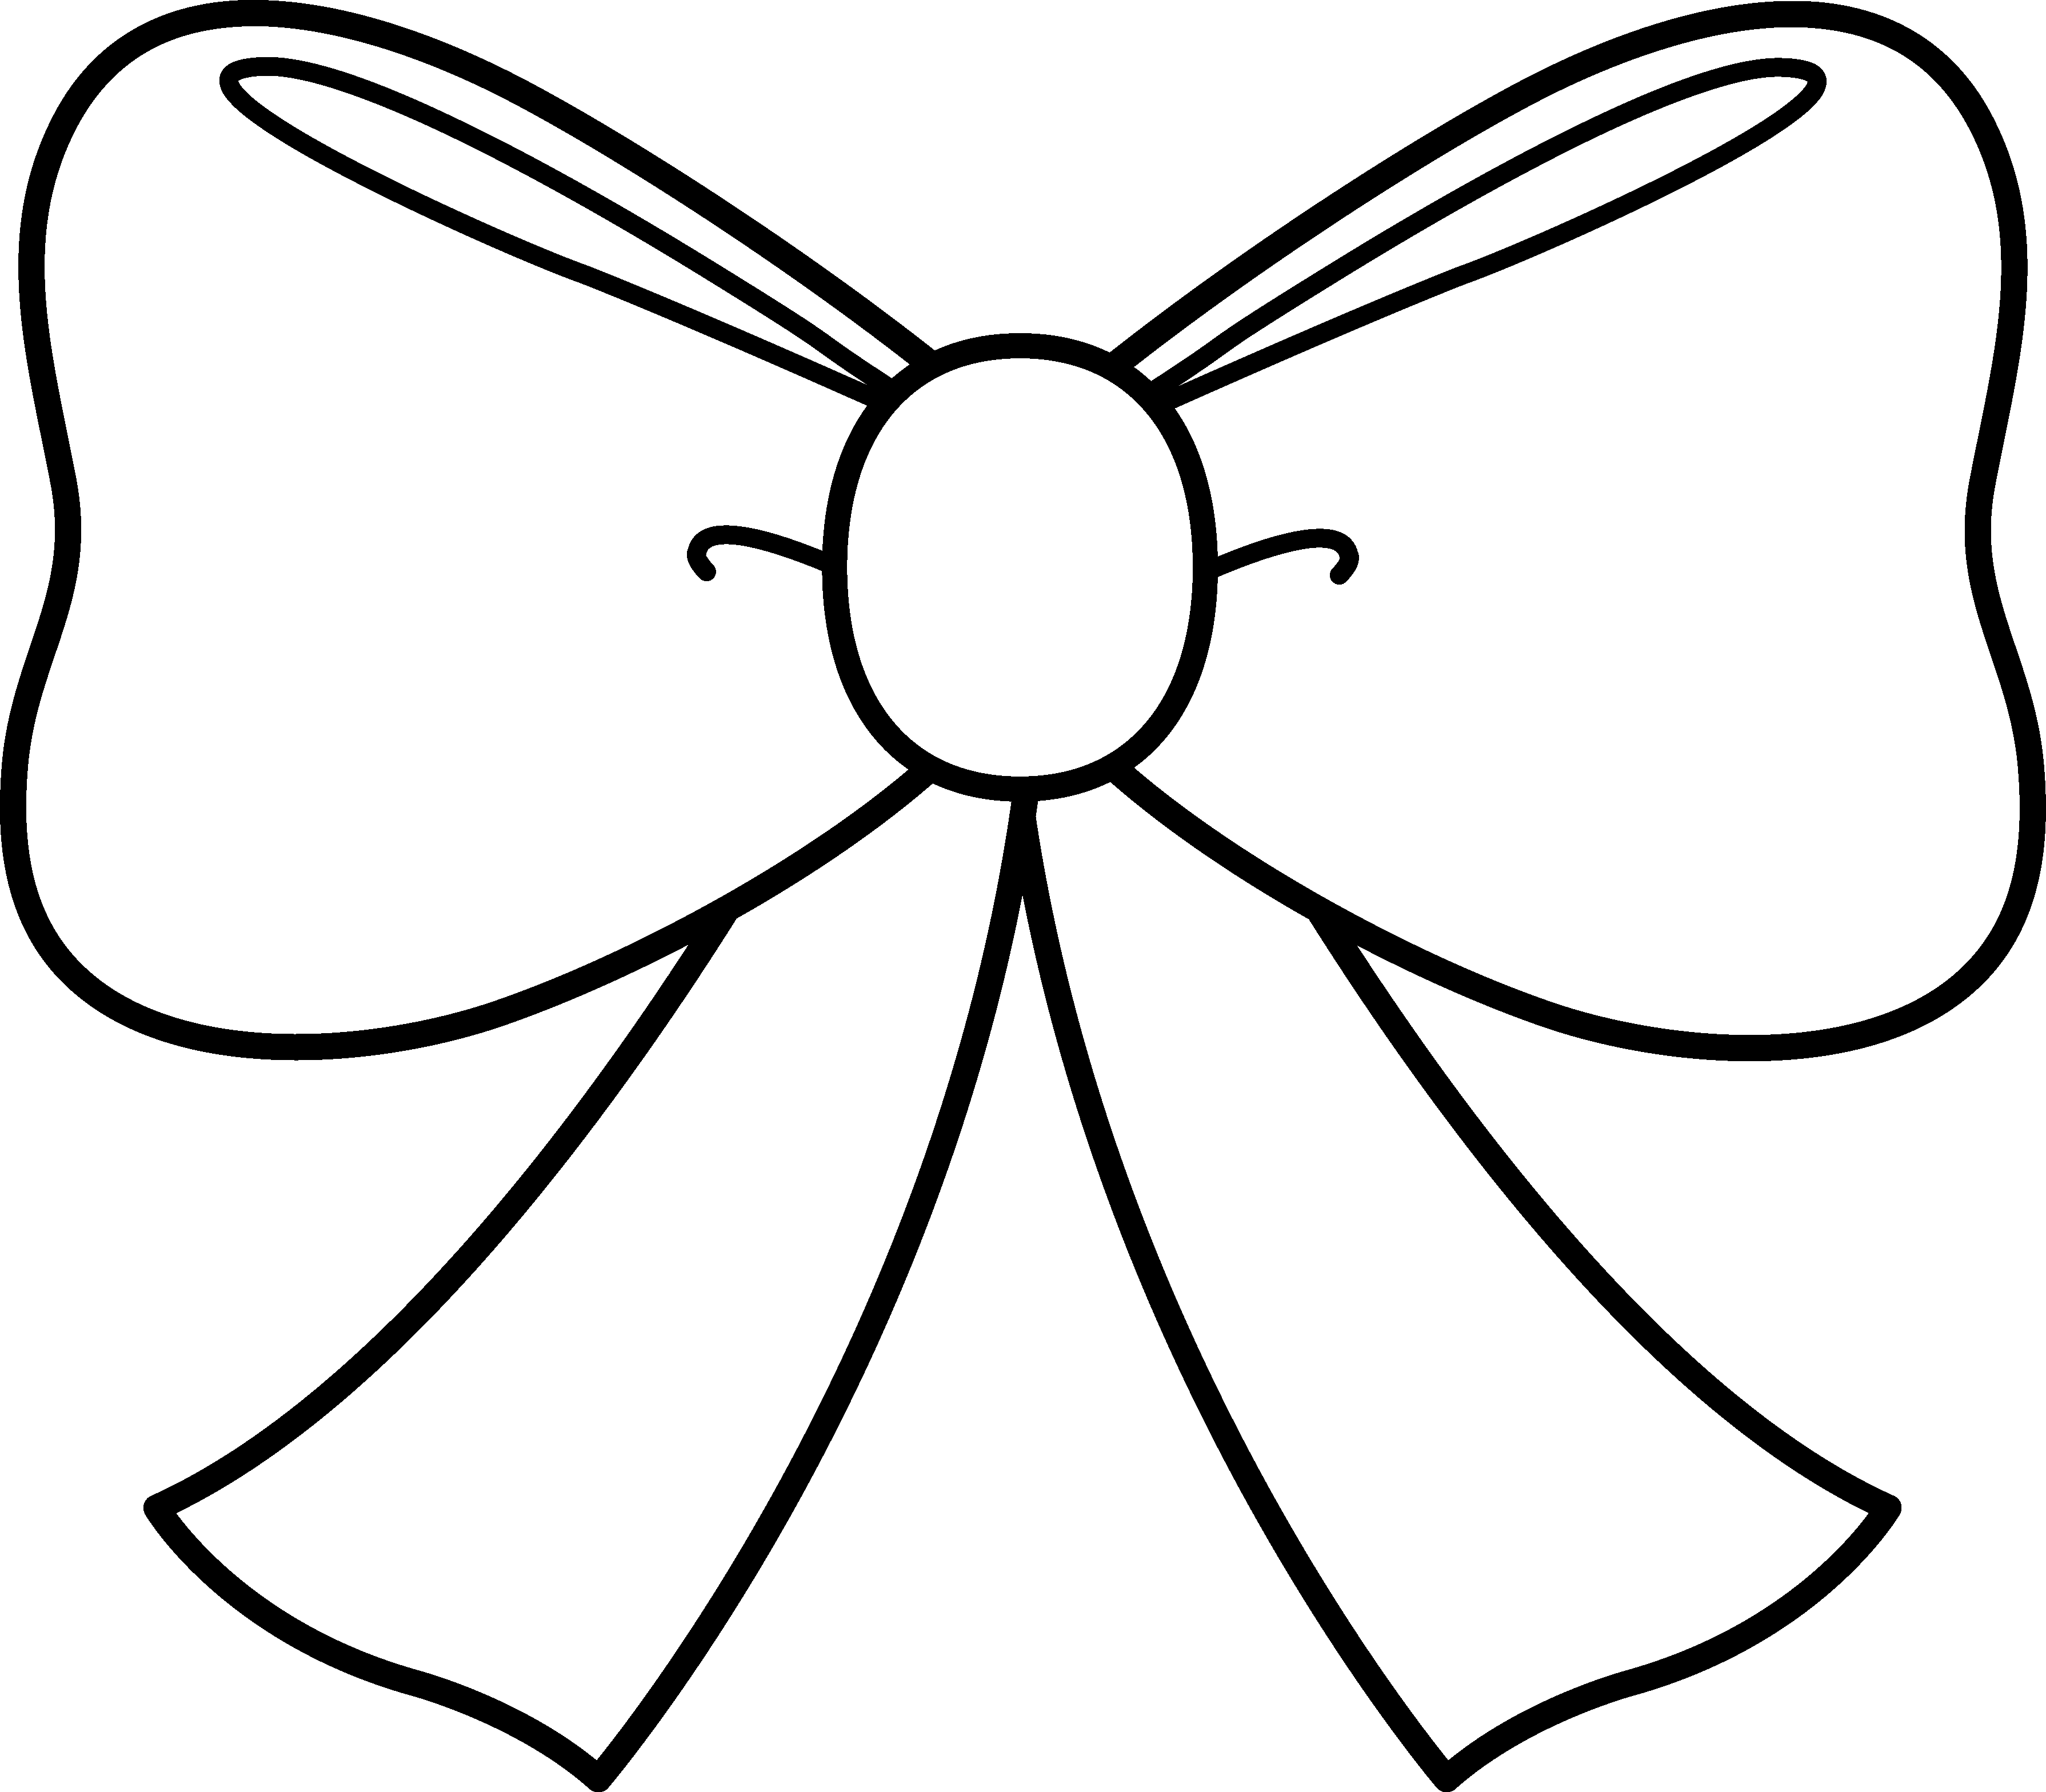 3580x3136 Bows Coloring Pages Bows Coloring Pages Cute Bow Coloring Page